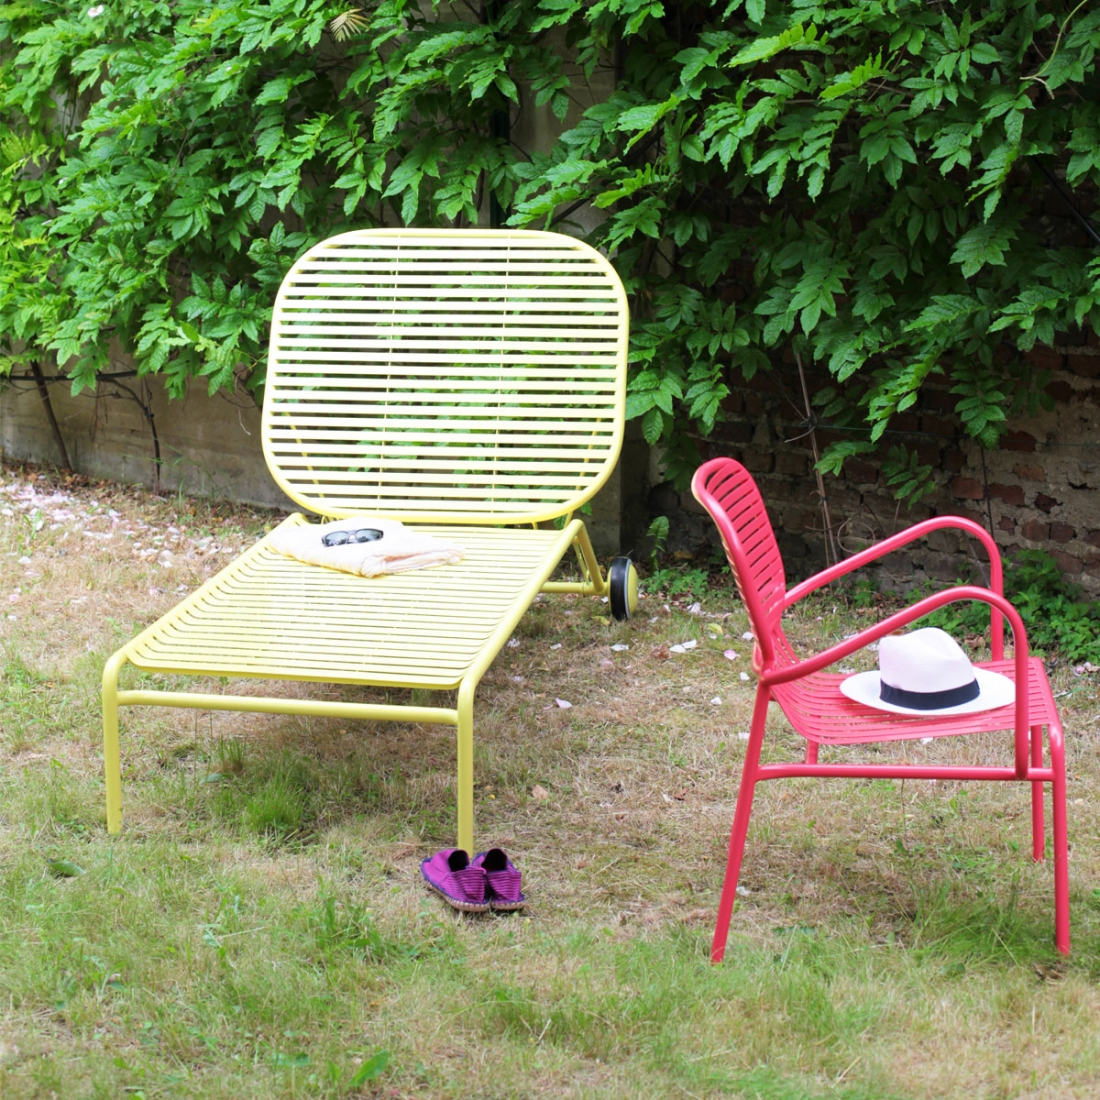 transat de jardin design week end par oxyo